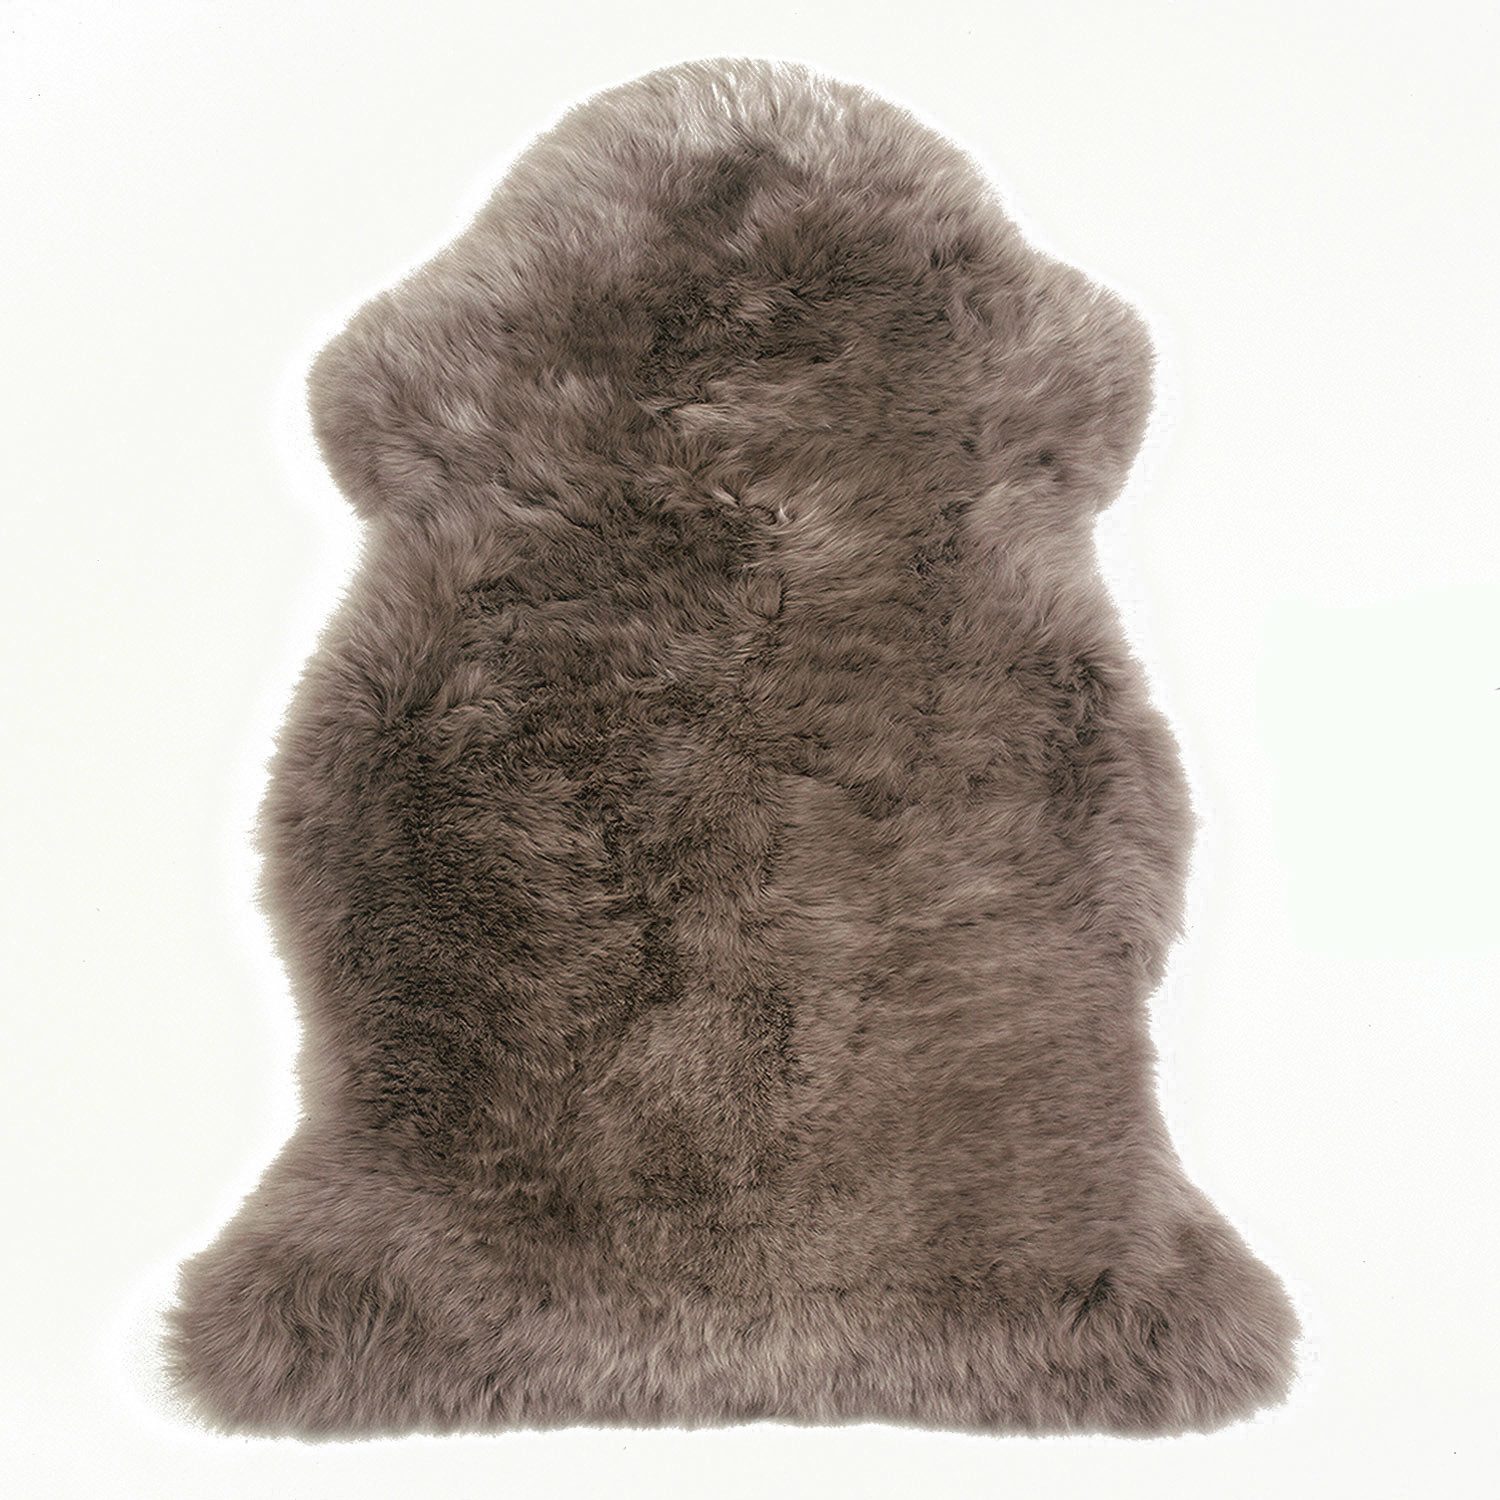 Sheepskin Rug Single Pelt Taupe – Engel Sheepskin Horse Tack